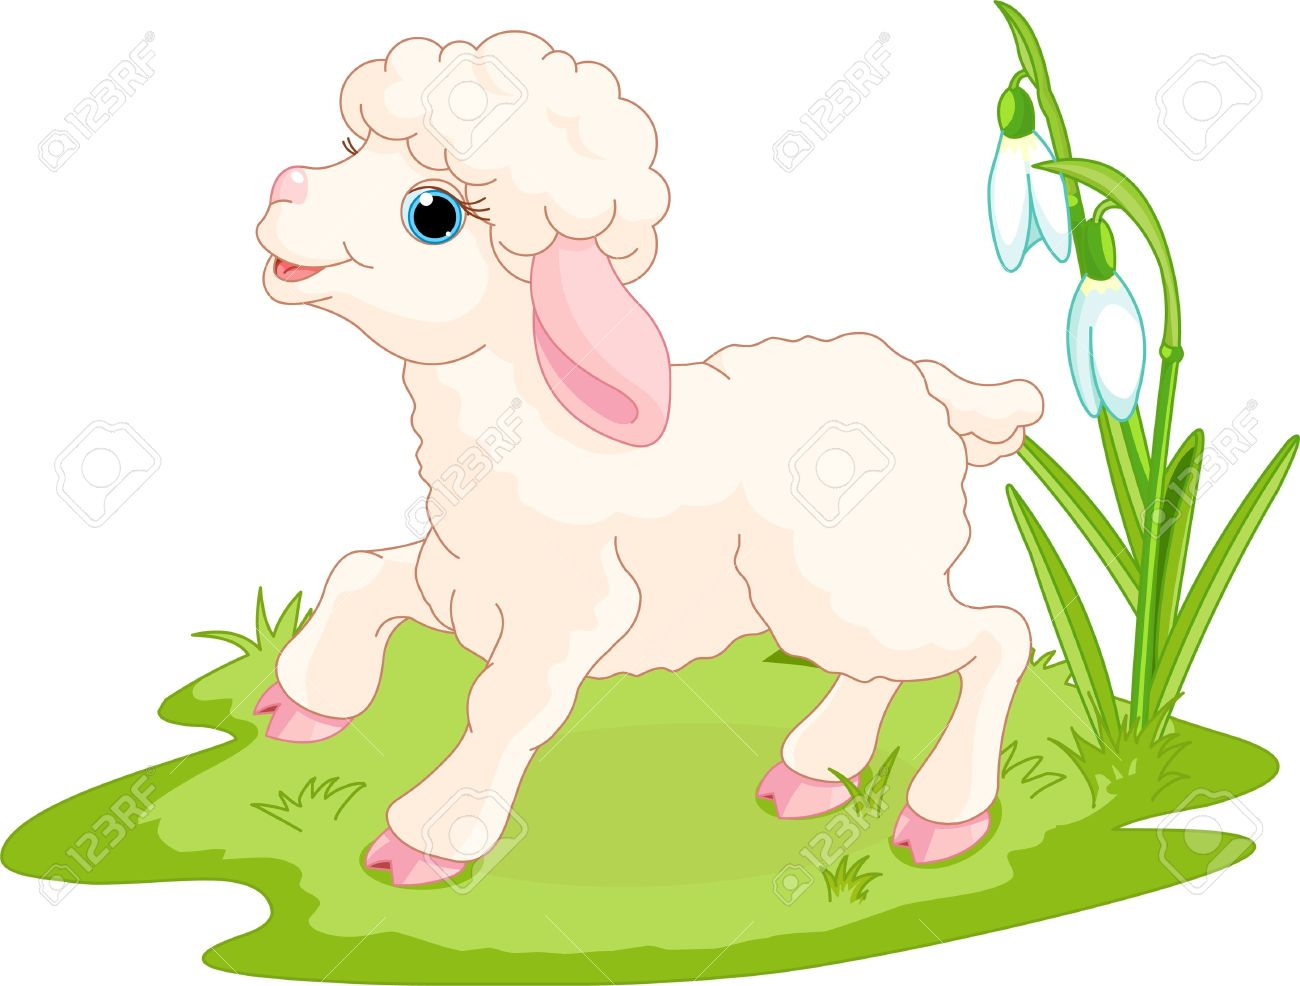 Lamb hd images . Sheep clipart easter